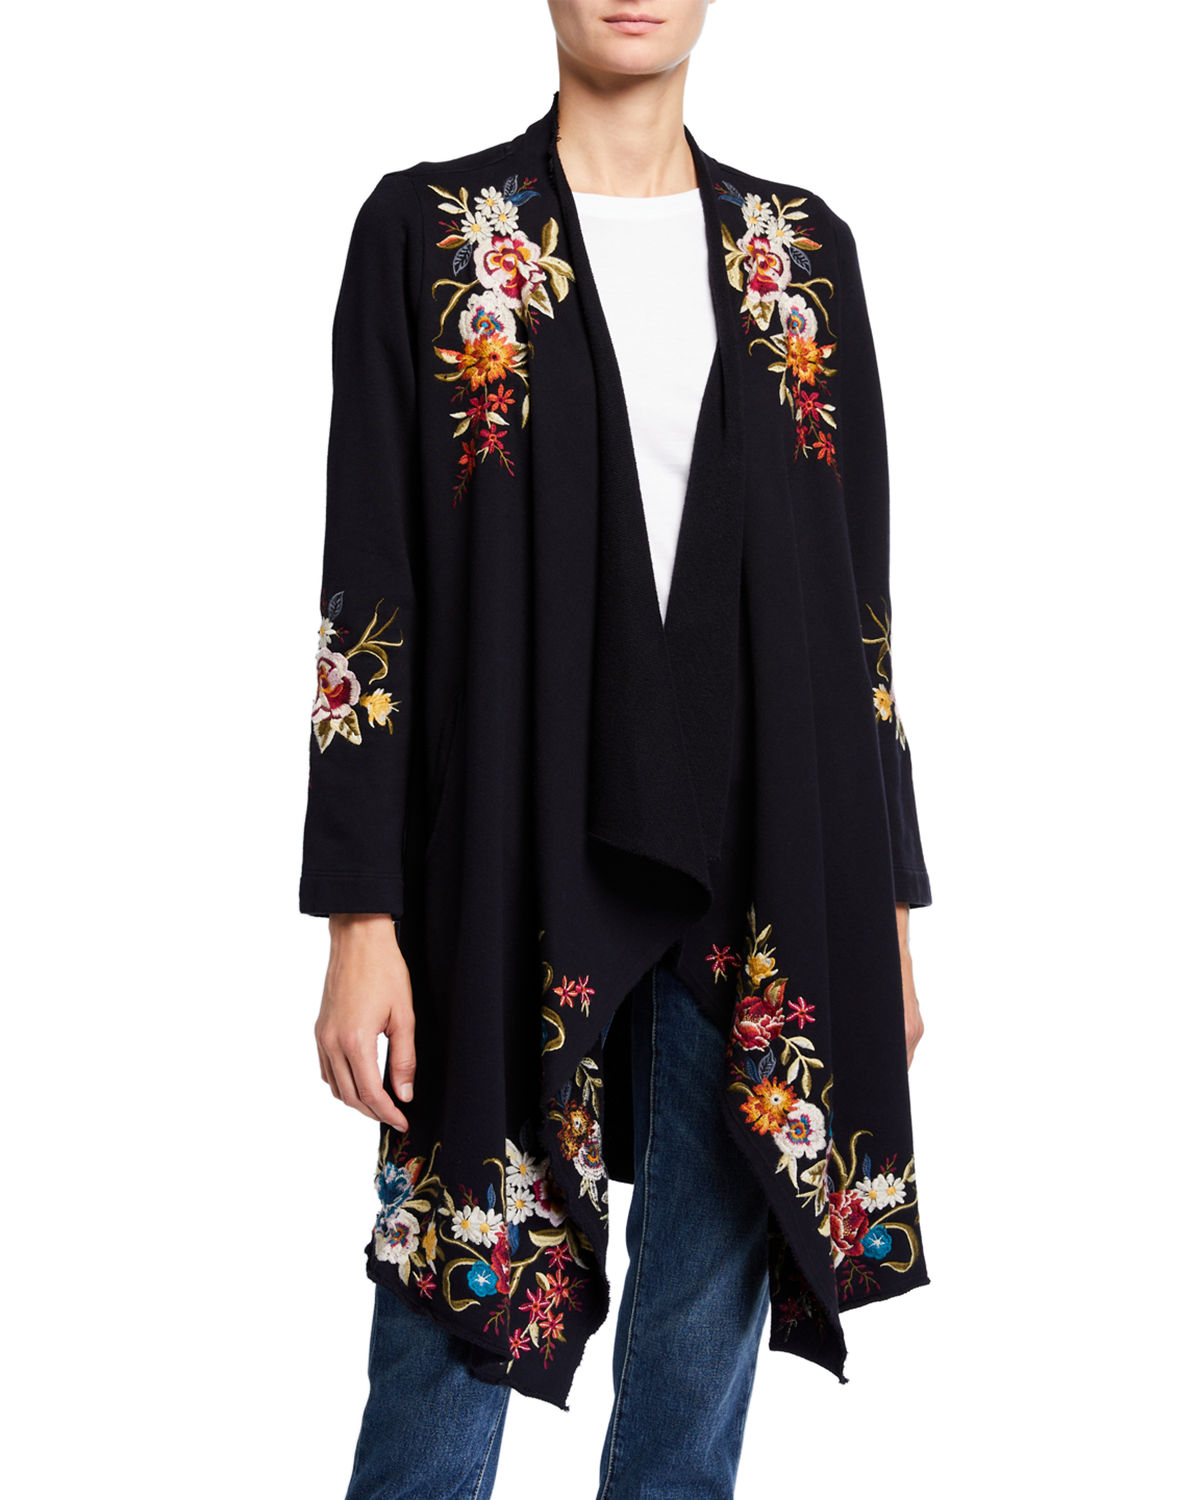 Johnny Was Tops ISLA FLORAL EMBROIDERED DRAPED CARDIGAN